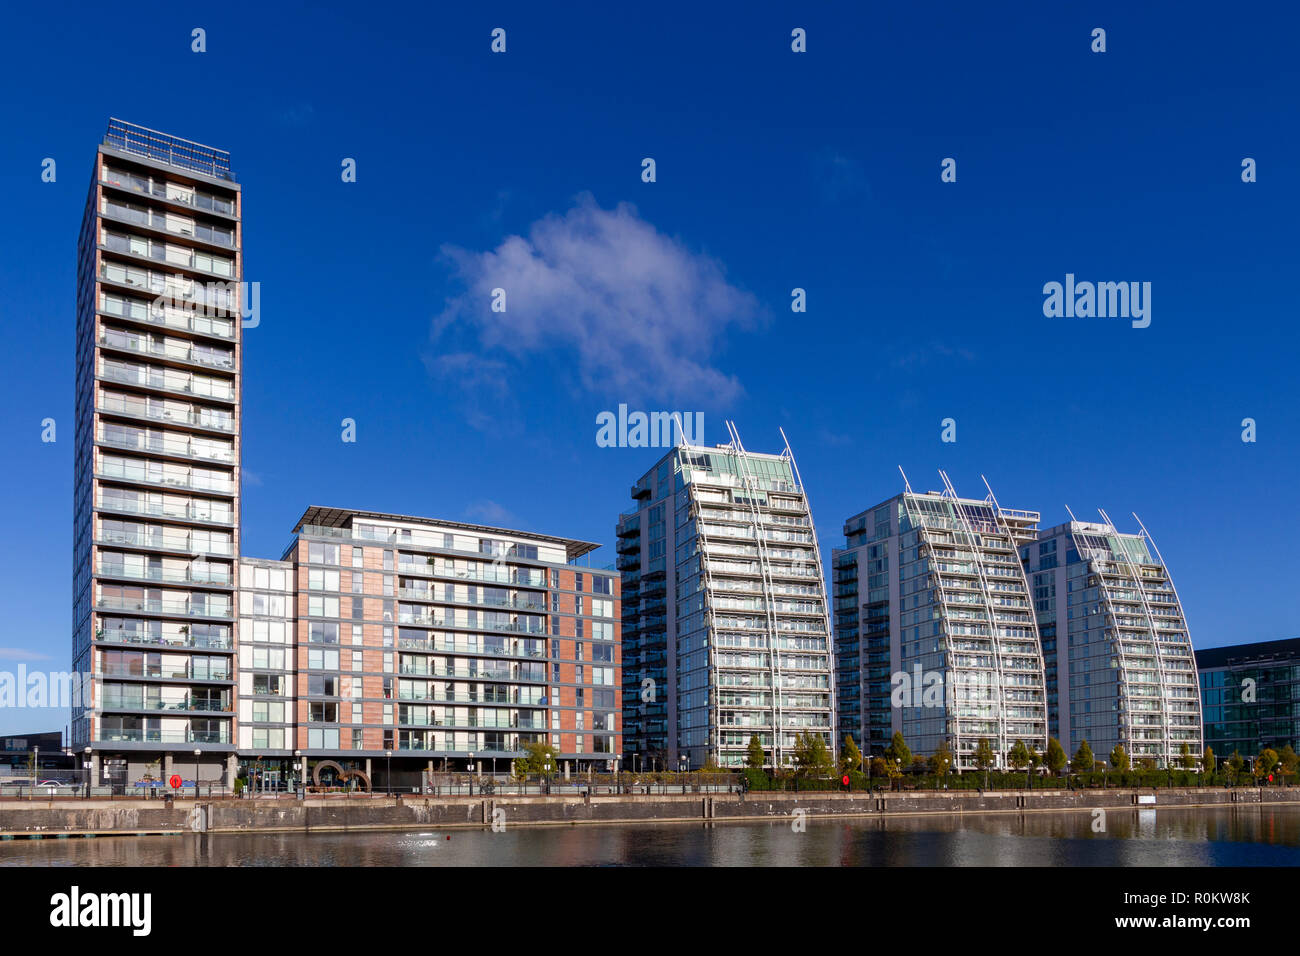 Residential Apartments at Salford Quays, Manchester - Stock Image